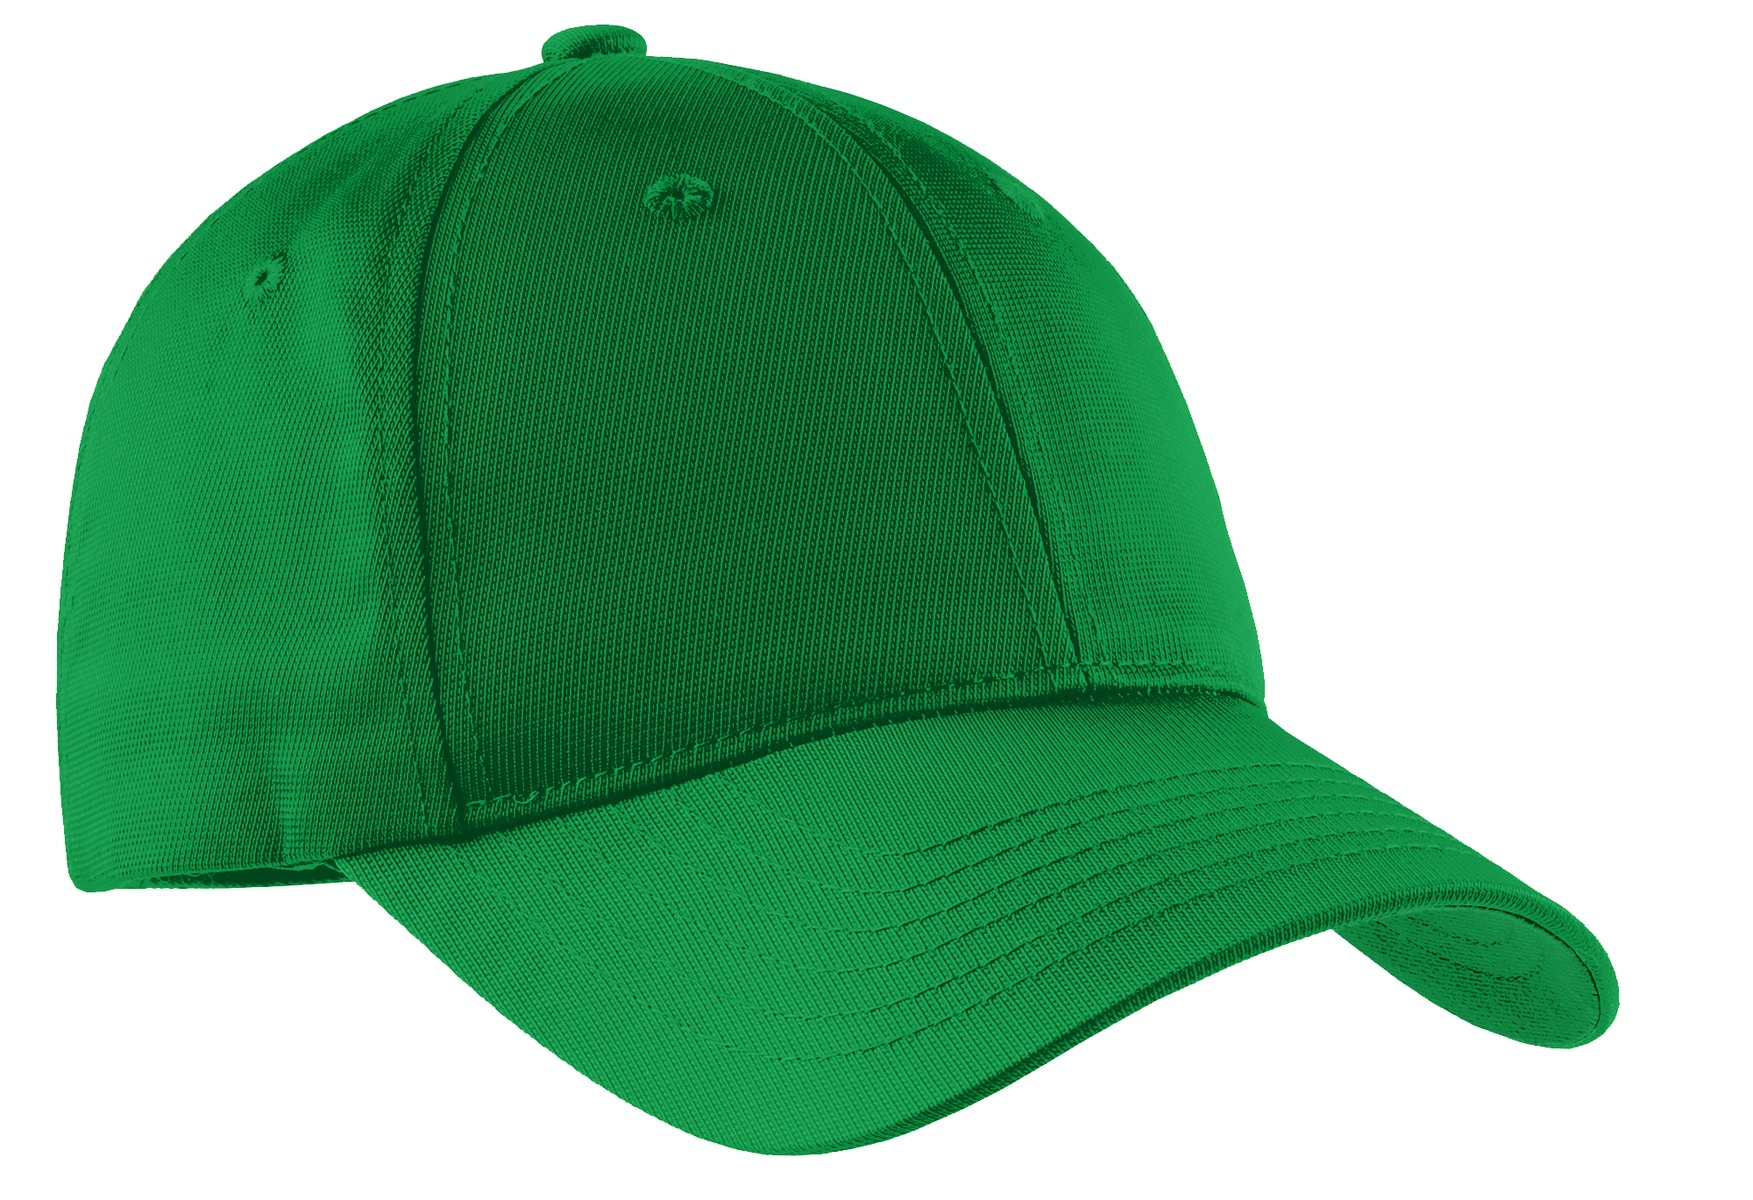 Sport-Tek ®  Dry Zone ®  Nylon Cap. STC10 - Kelly Green